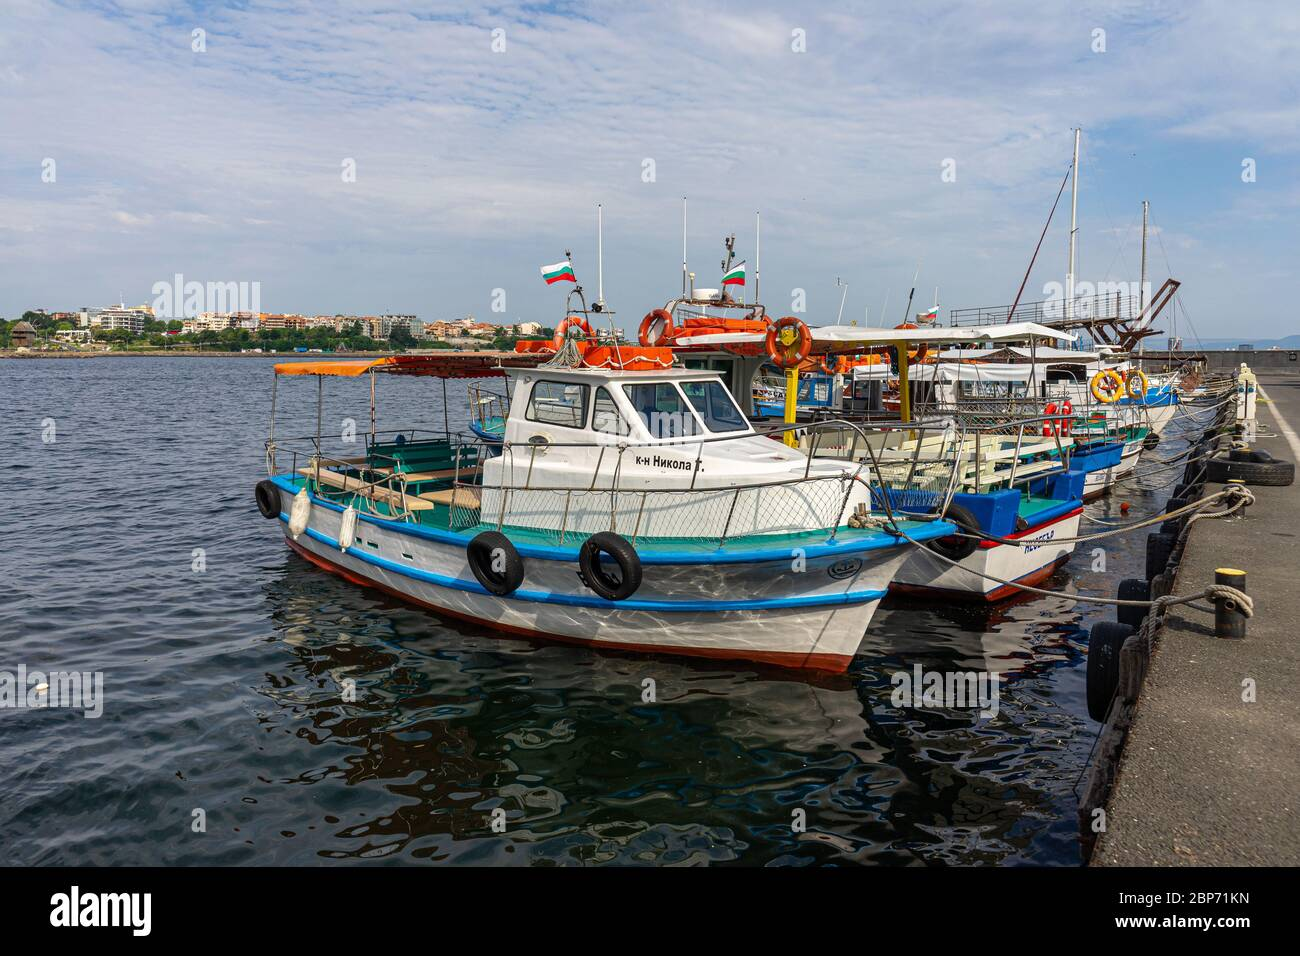 NESSEBAR, BULGARIA - JUNE 22, 2019: Pleasure and fishing boats on the pier of the old town. Nesebar is an ancient city and one of the major seaside resorts on the Bulgarian Black Sea Coast. Stock Photo